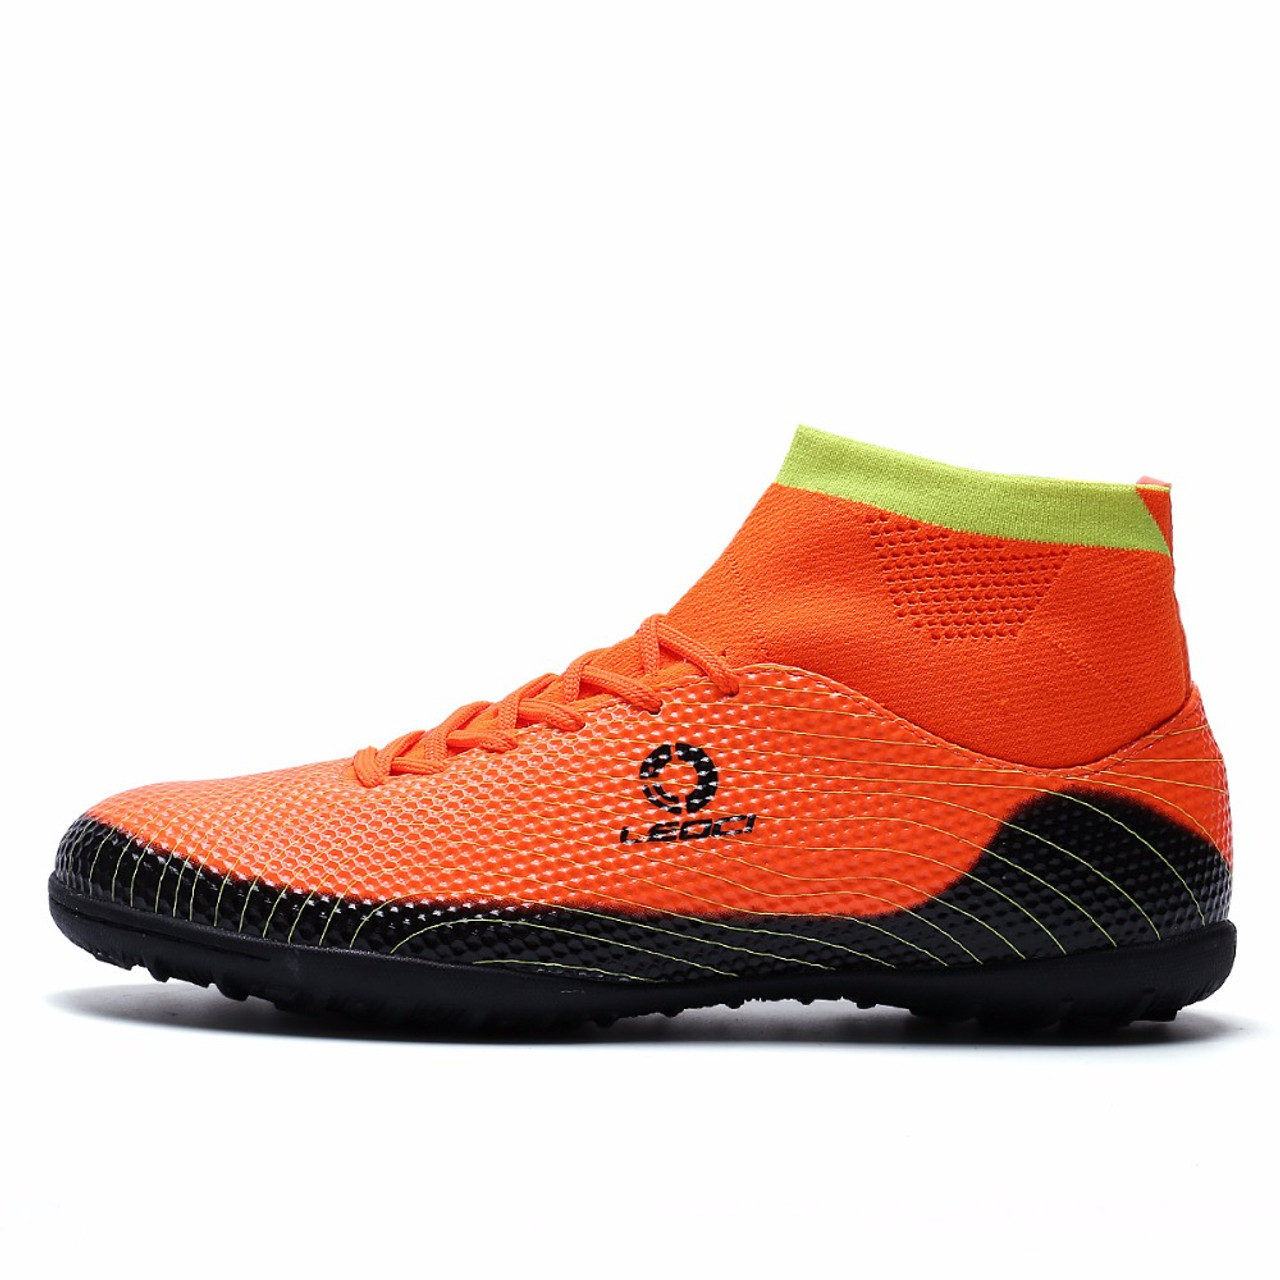 cfa59c5f5 ... Leoci Men TF Soccer Shoes High Ankle Football Boots Plus Size Soccer  Cleat Boots Kids Boys ...